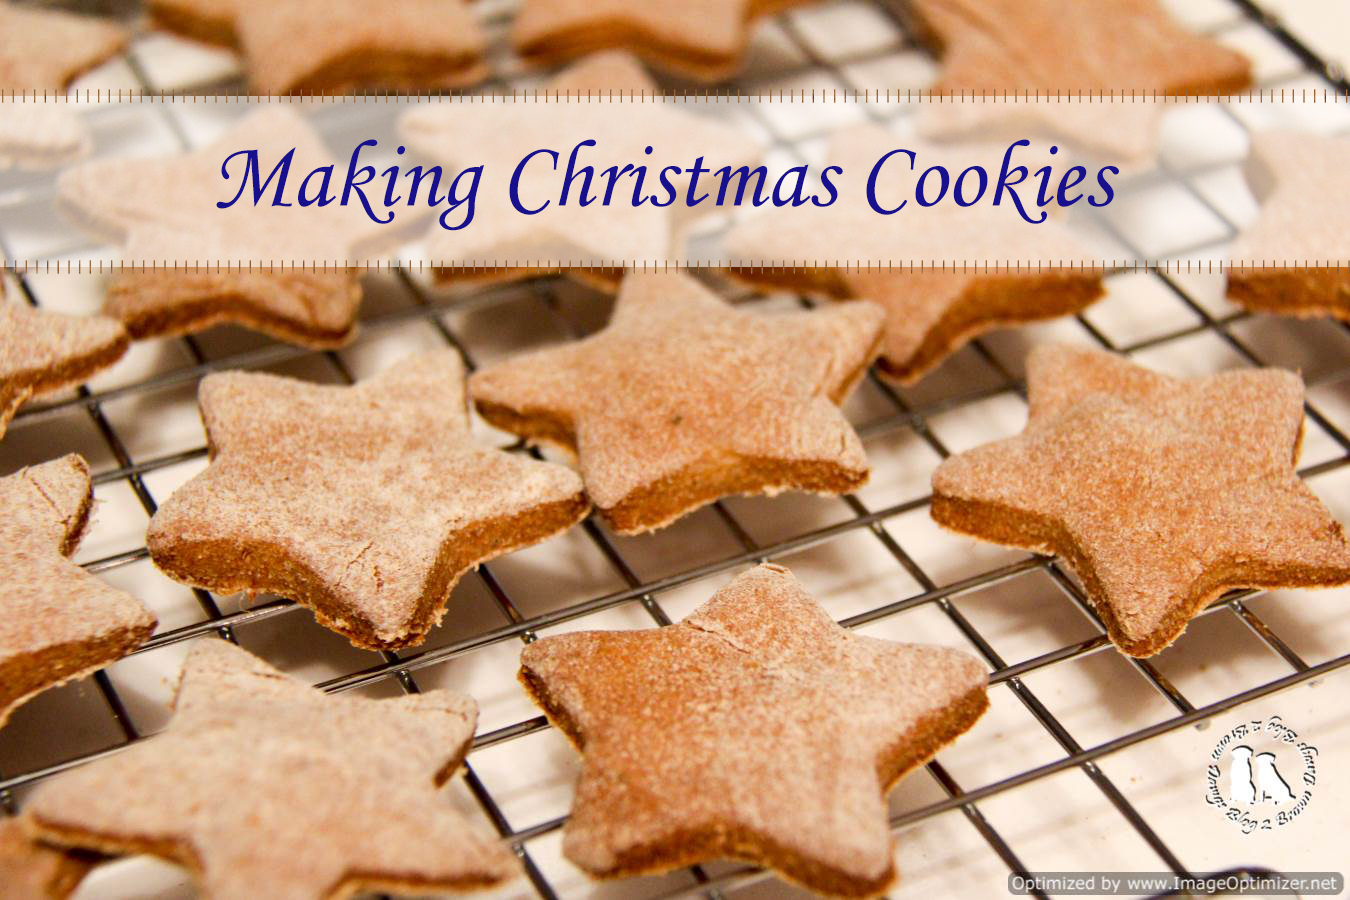 This Time Of Year I Like To Bake Christmas Cookies Including Baking Some For The Brown Dawgs Decided Make A Cookie Recipe Which Incorporates One